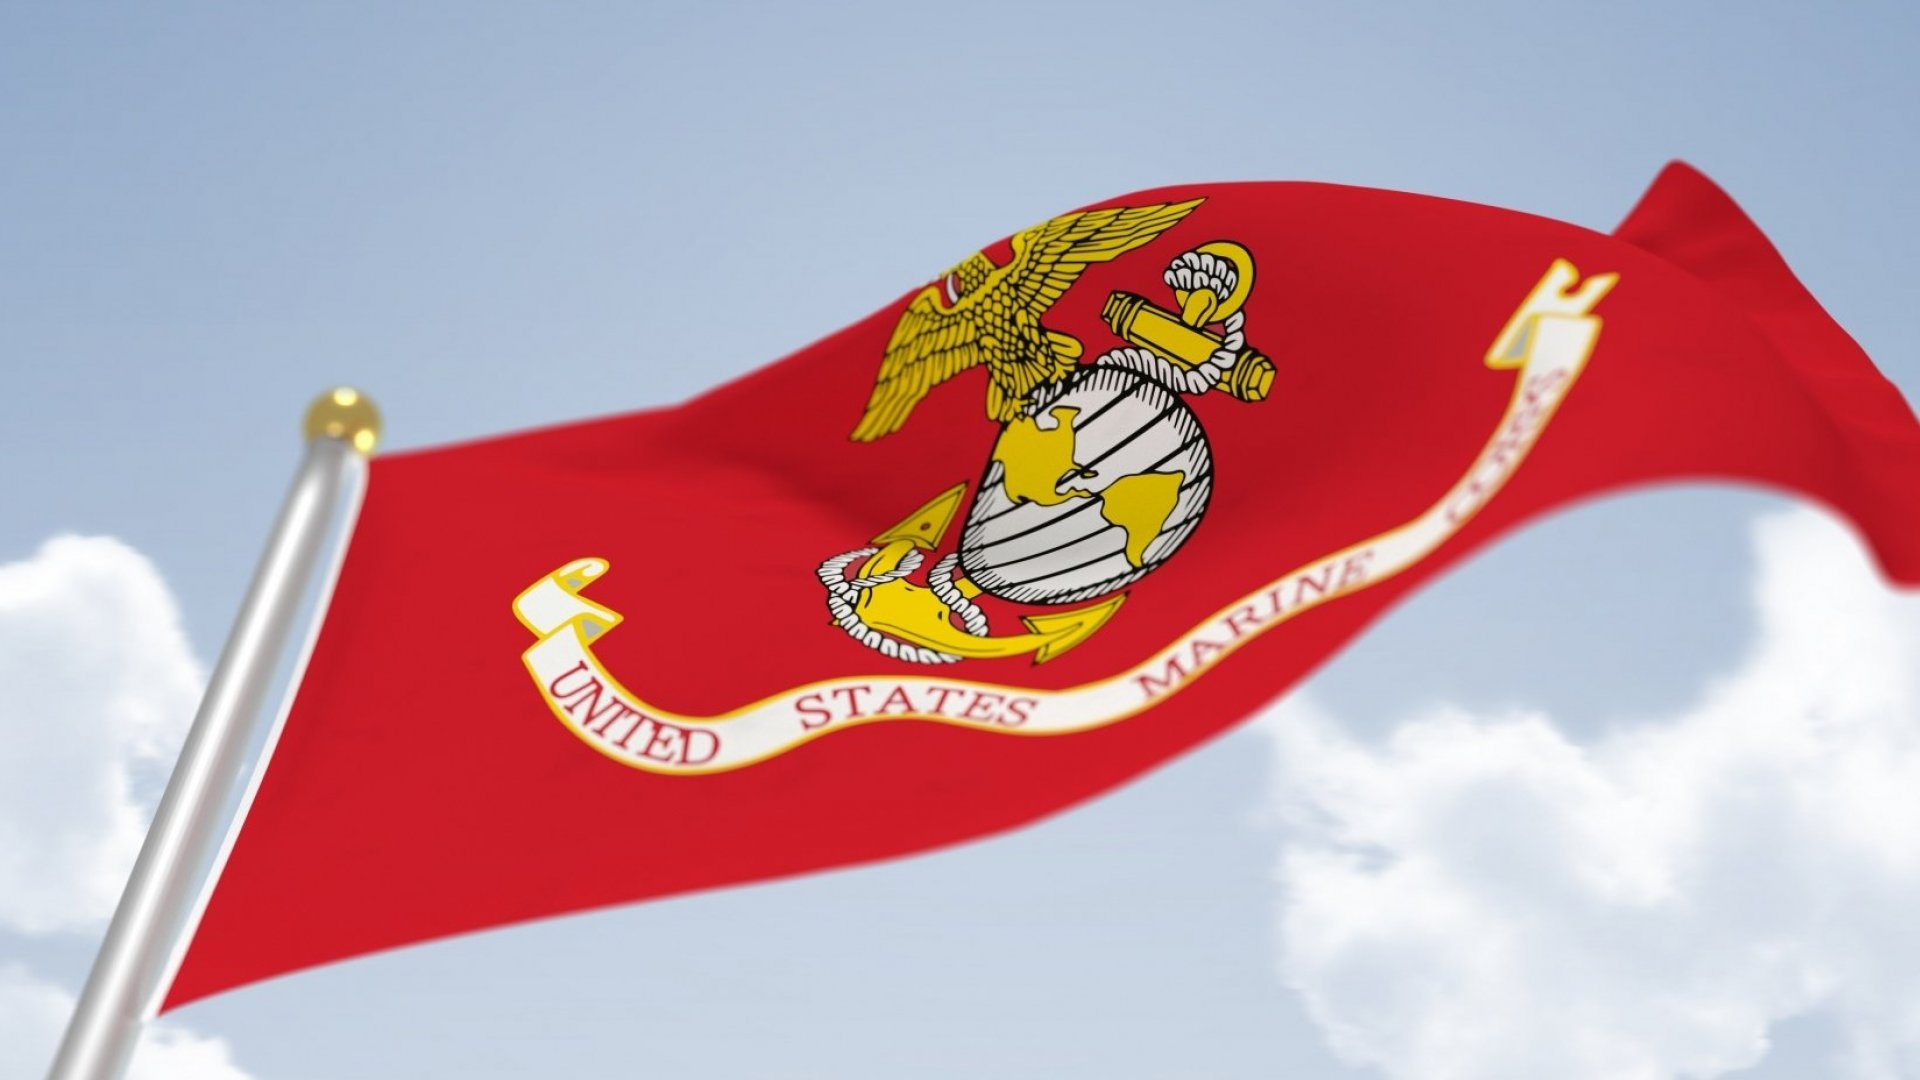 Happy Birthday U.S. Marine Corps. Here are 17 Inspiring Quotes About the Marine Corps